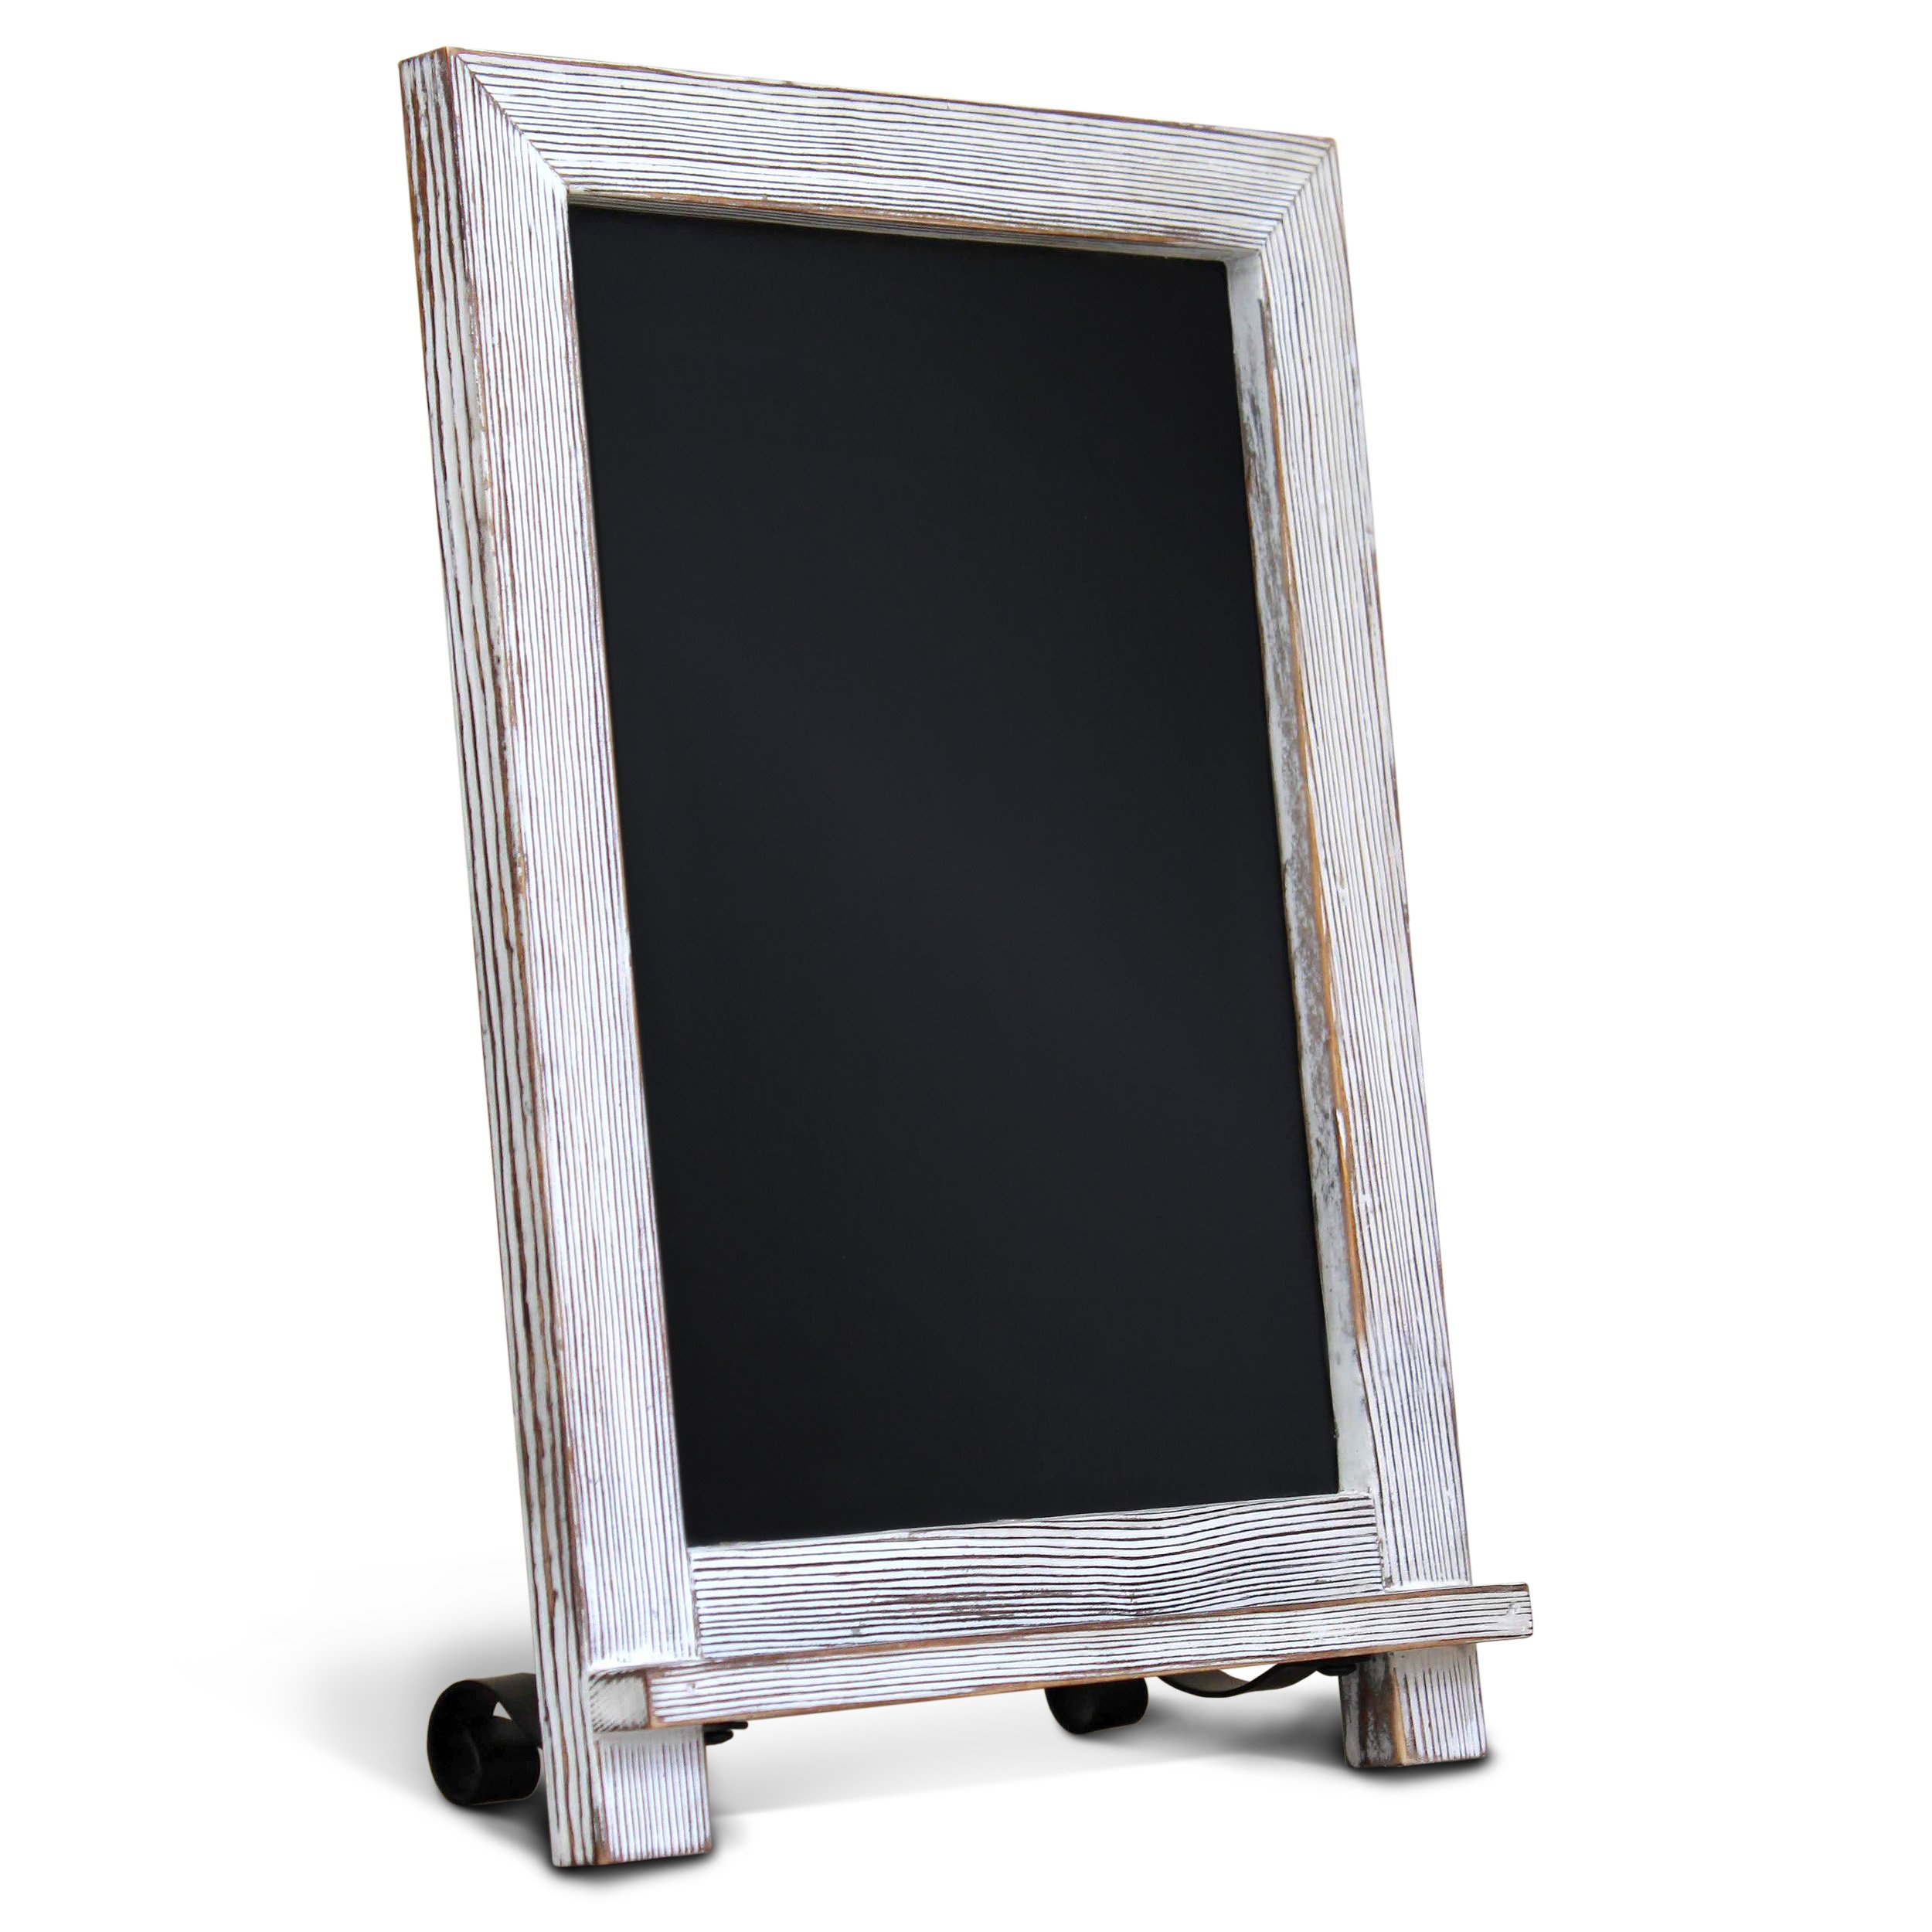 Rustic Whitewash Tabletop Chalkboard Sign / Hanging Magnetic Wall Chalkboard / Small Countertop Chalkboard Easel / Kitchen Countertop Memo Board / 9.5'' x 14'' . Weddings, Birthdays, Baby Announcements by HBCY Creations